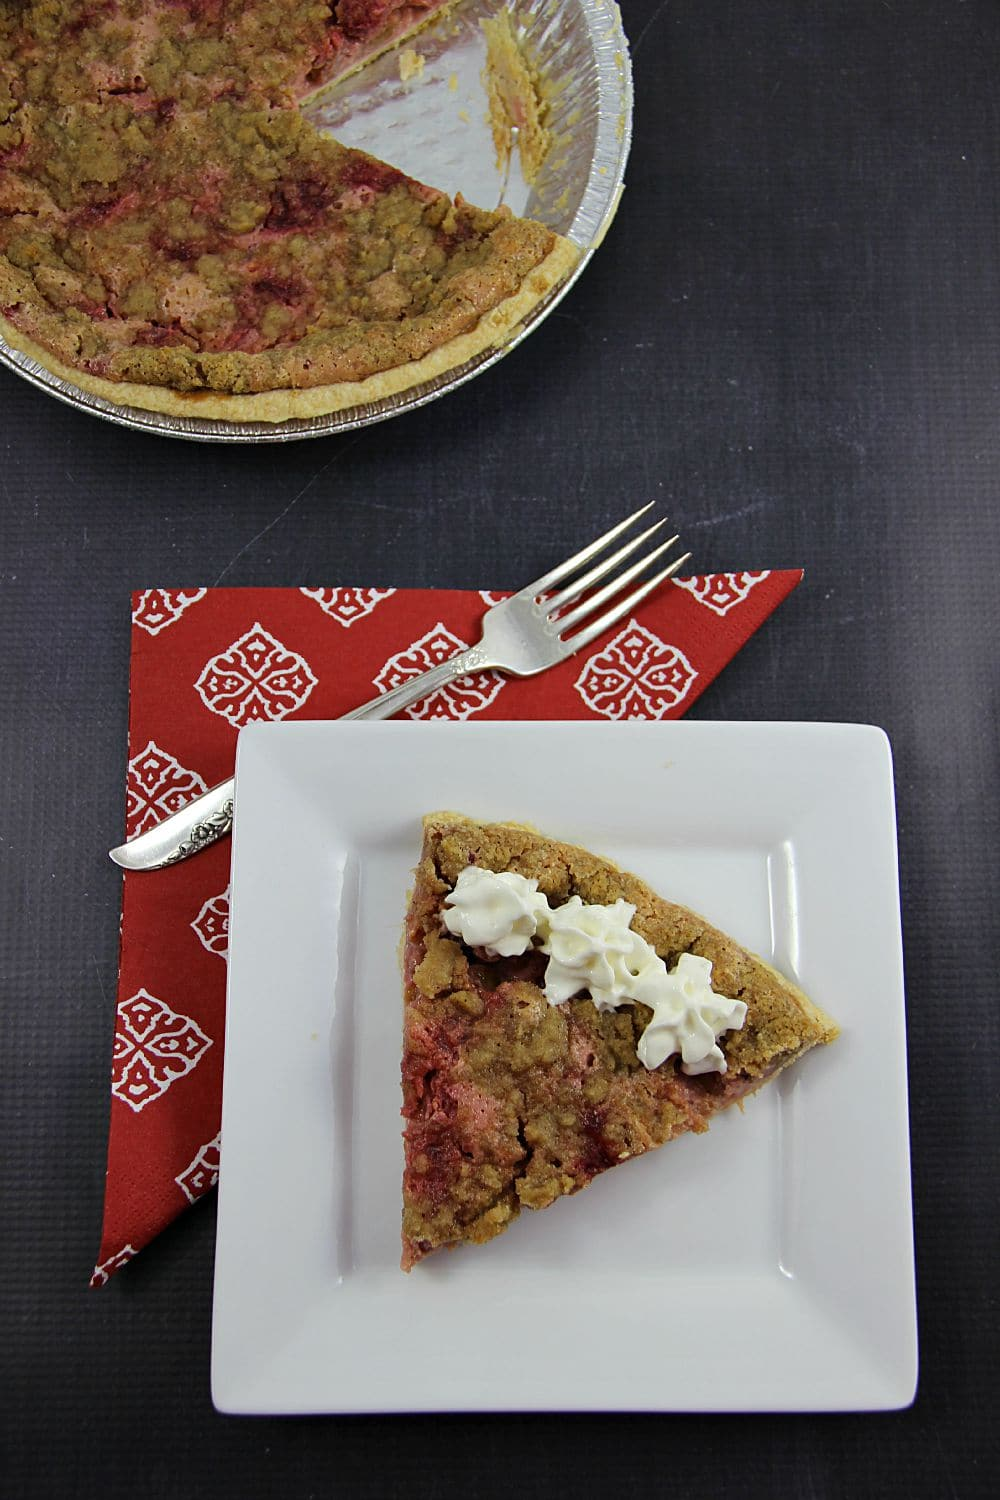 Strawberry Rhubarb Sour Cream Pie